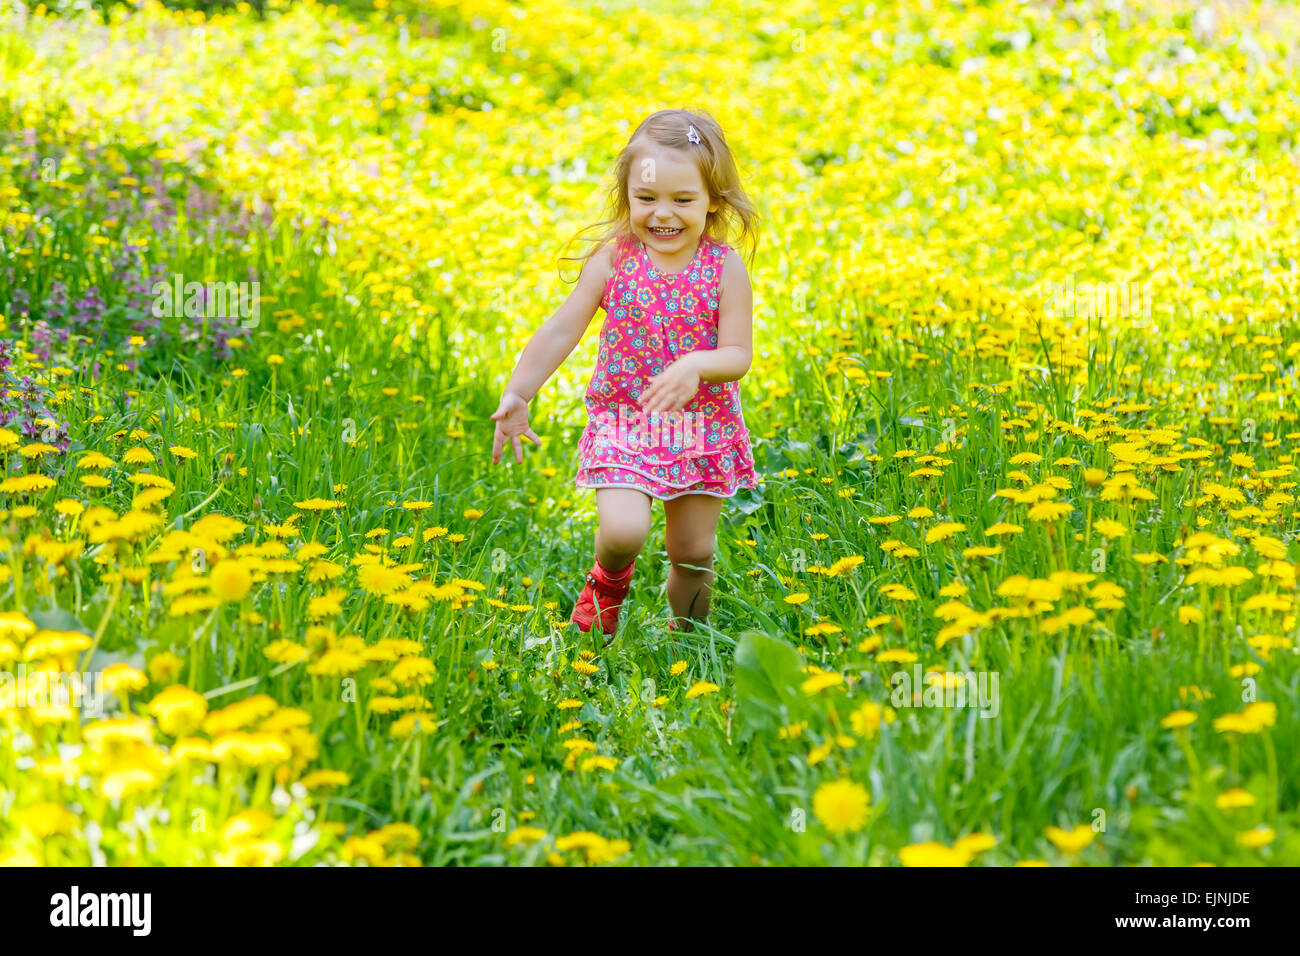 Little girl in the park - Stock Image